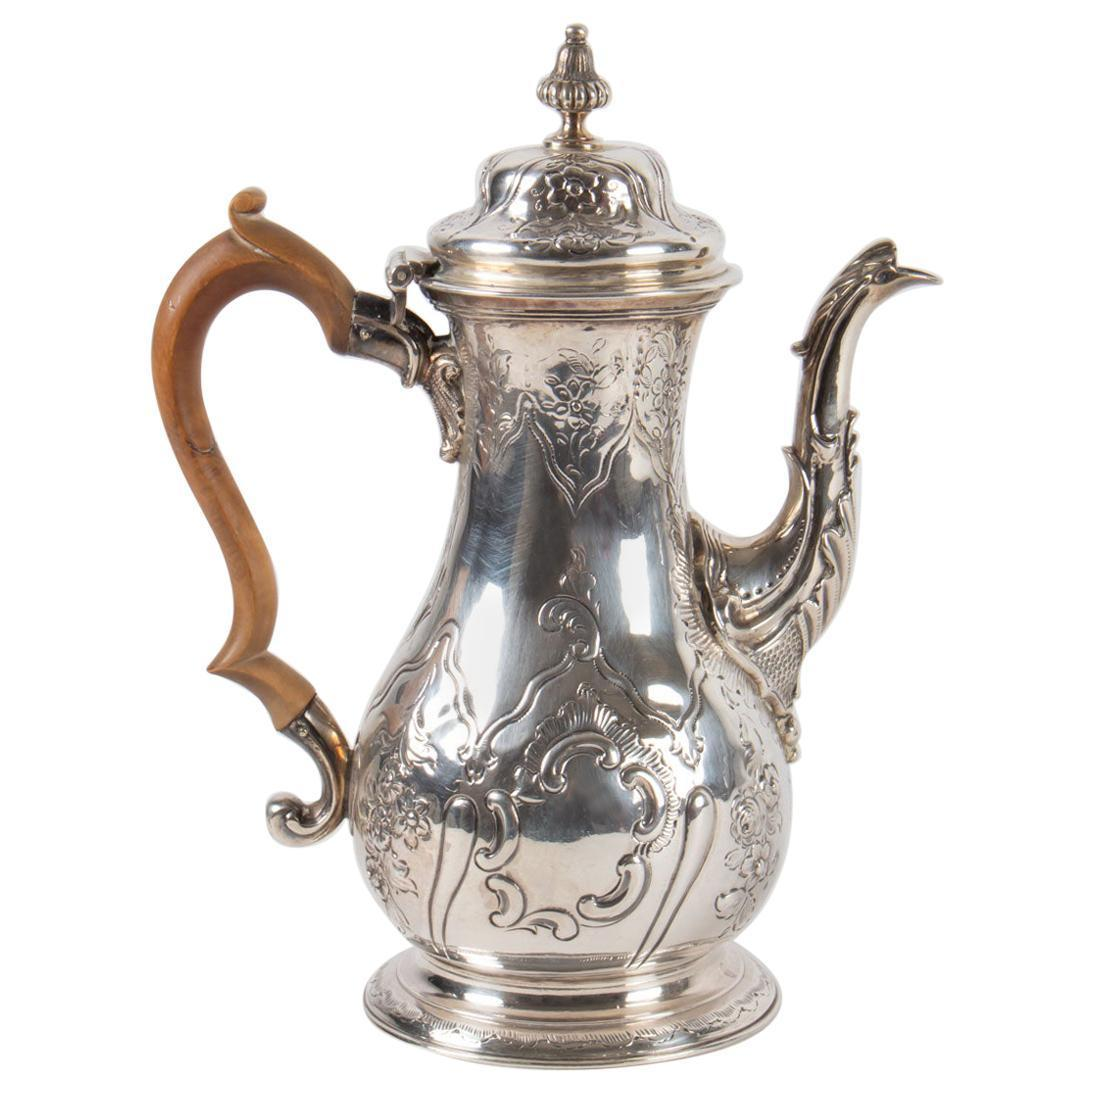 coveted antique silver teapot